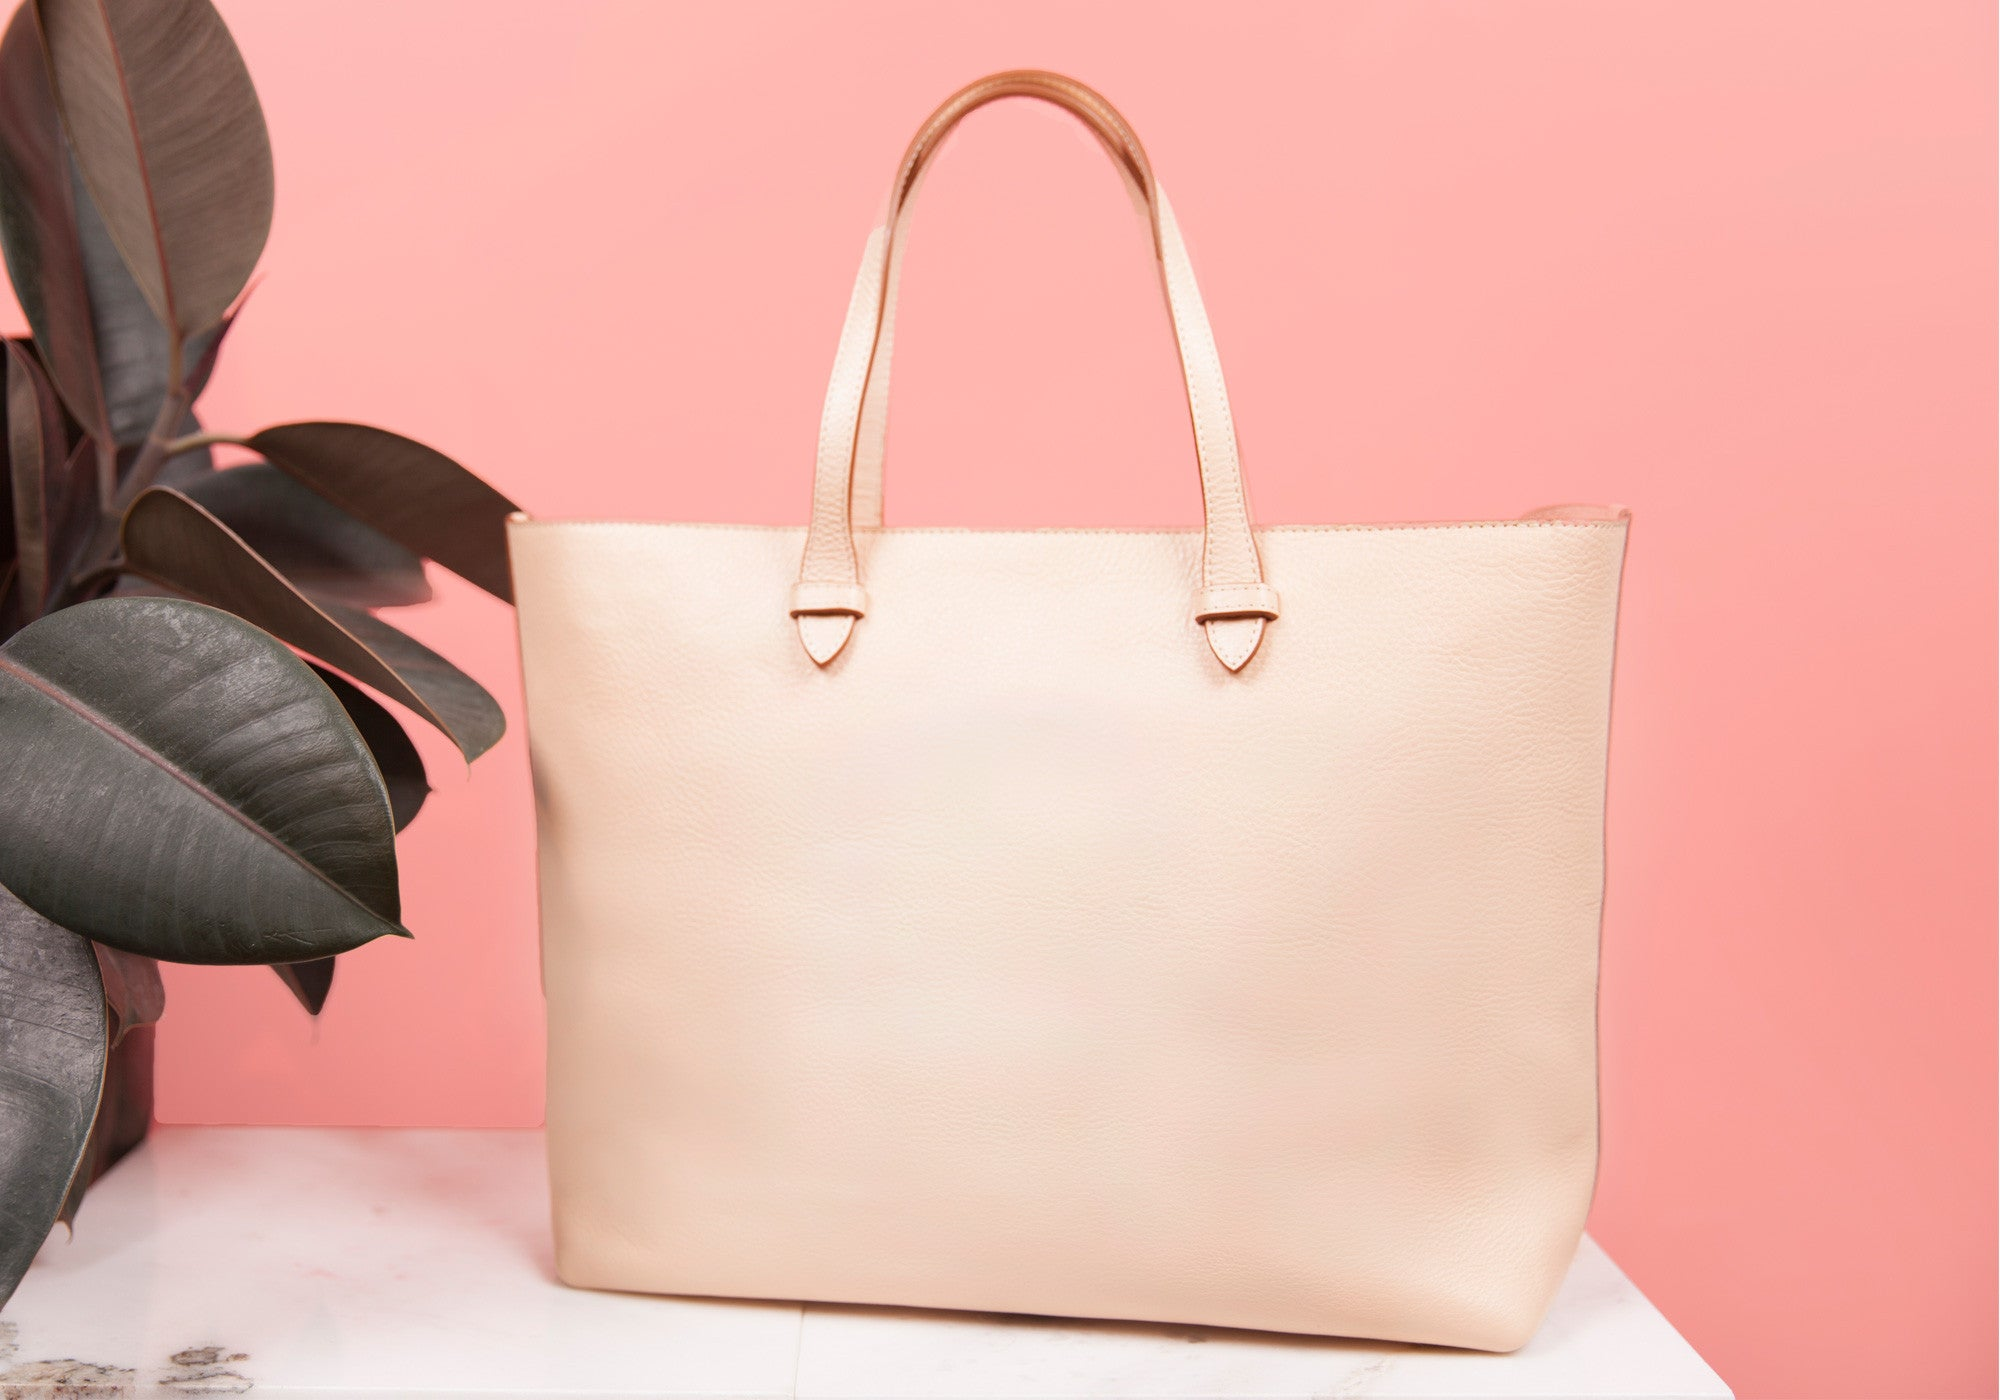 No. 12 Leather Tote Lifestyle